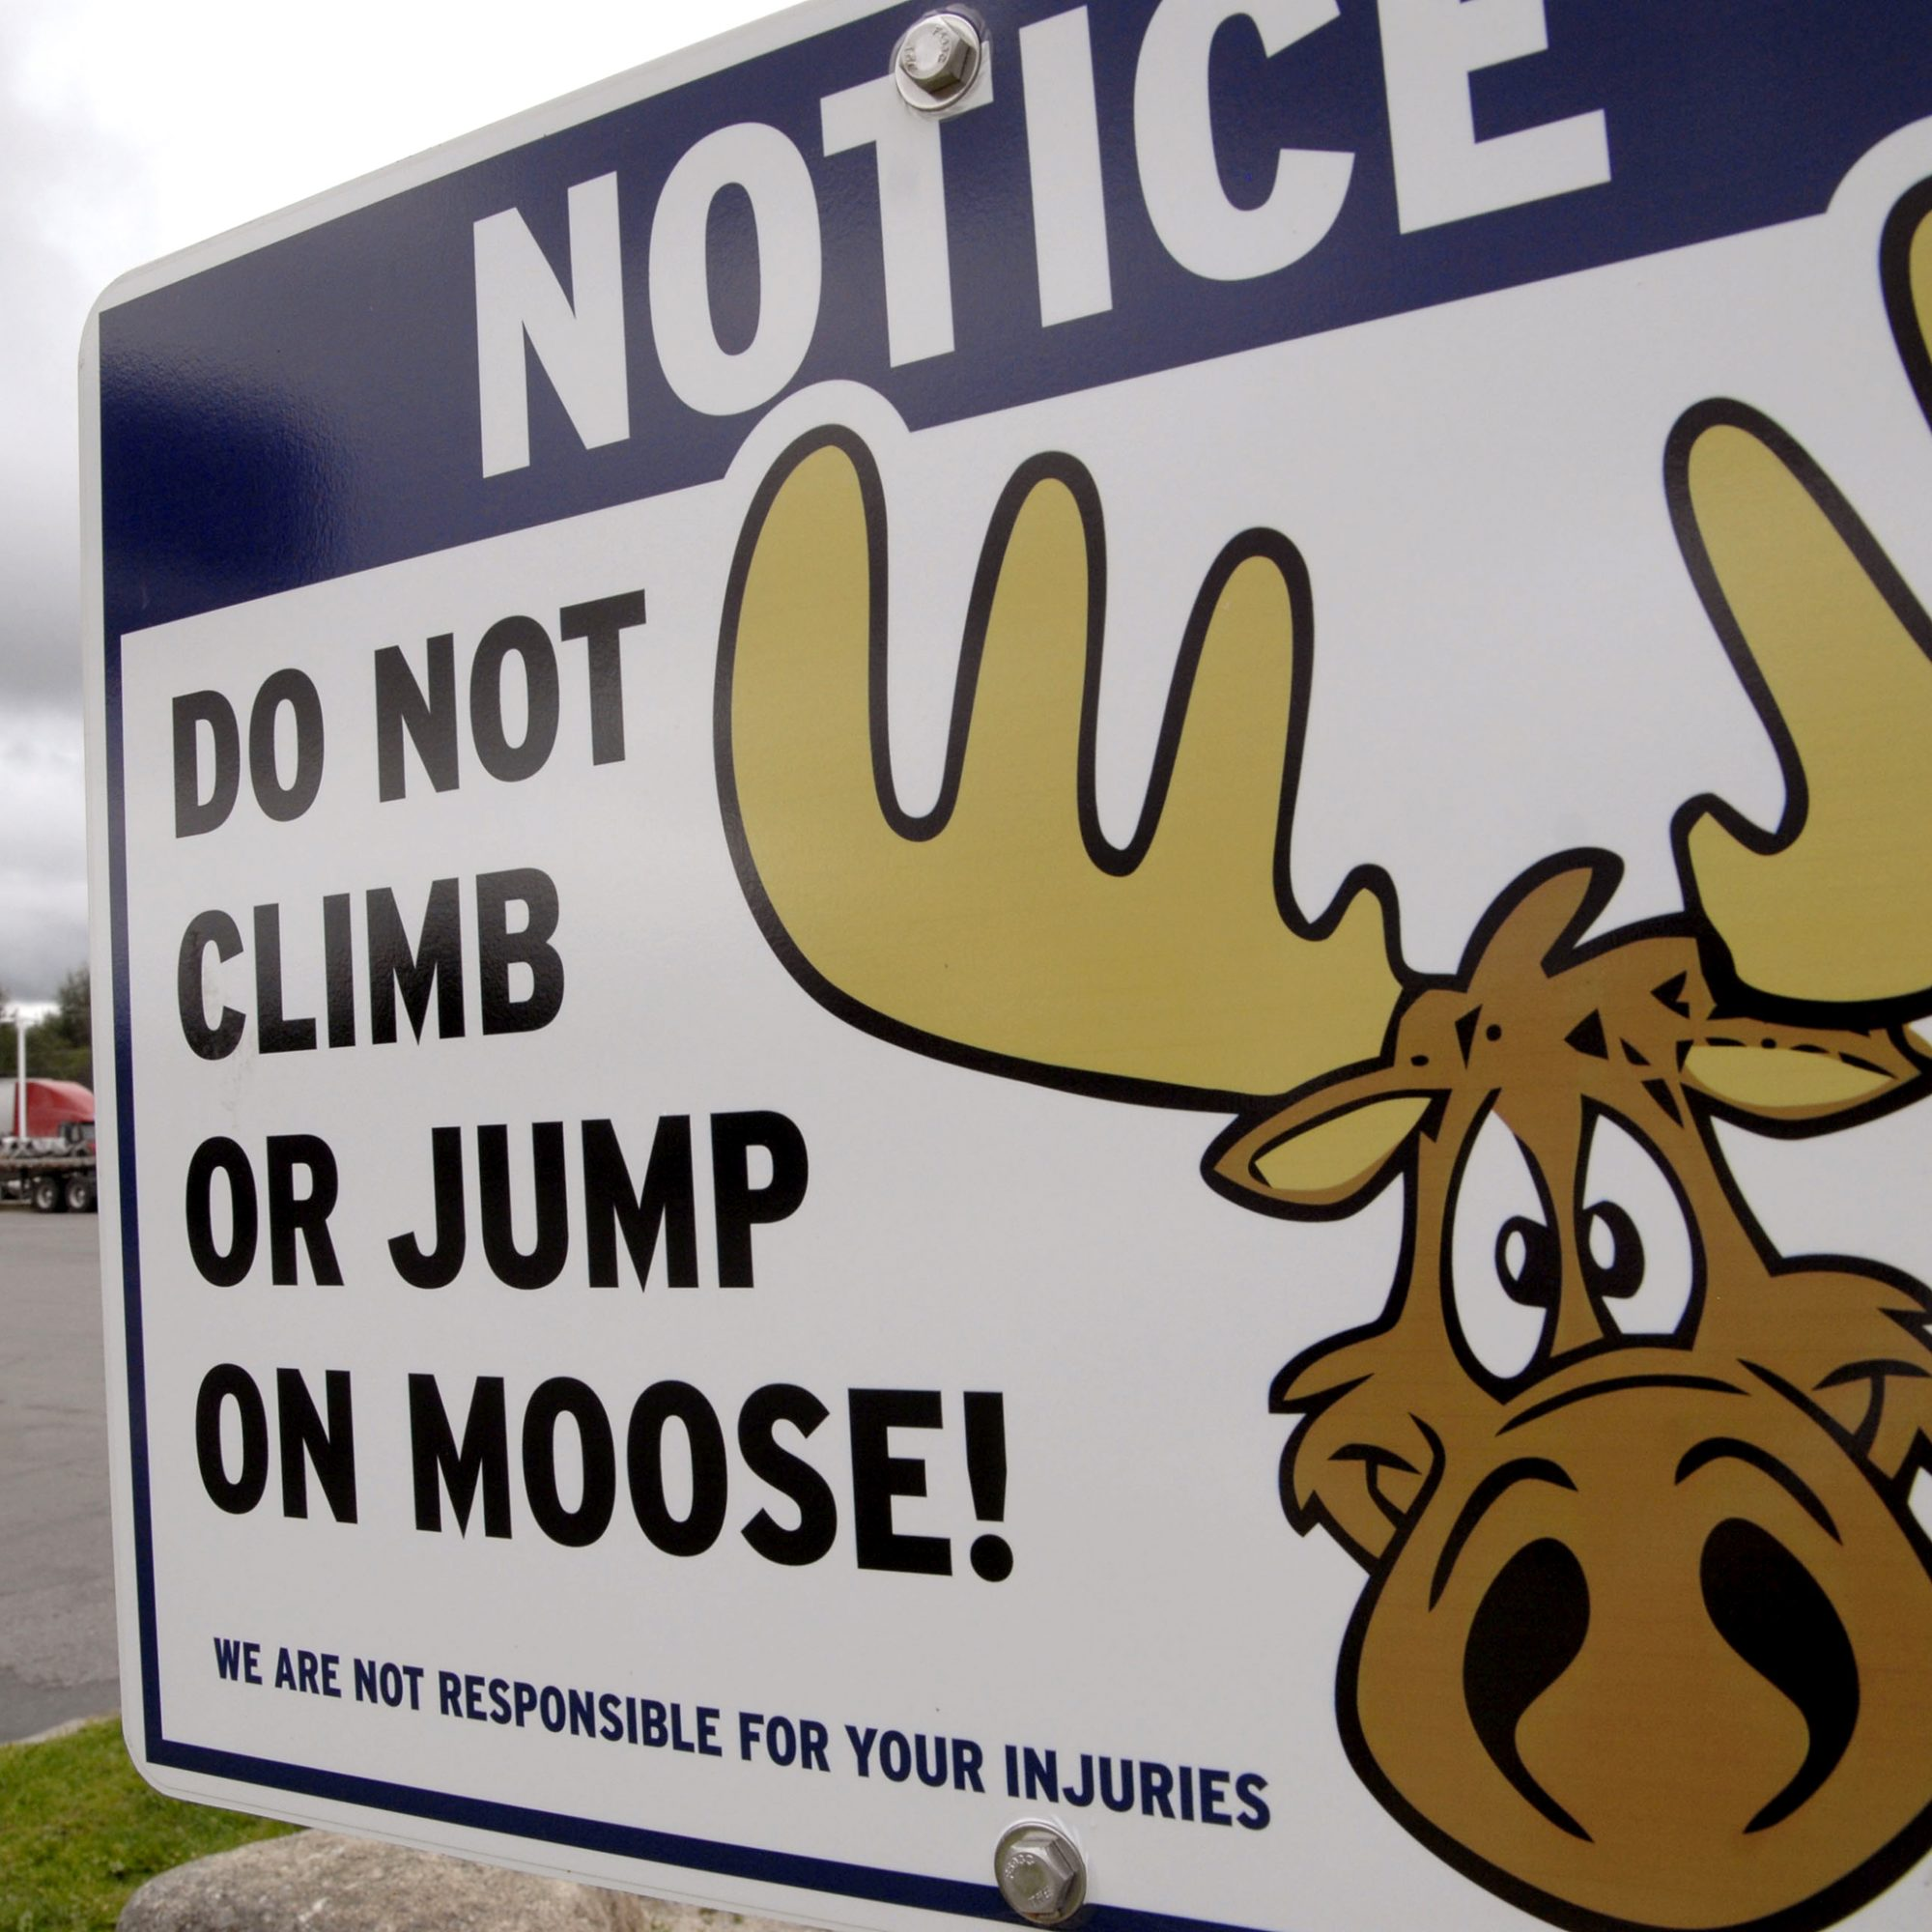 Can You Help This Poor Man Find His Moose Roasts?